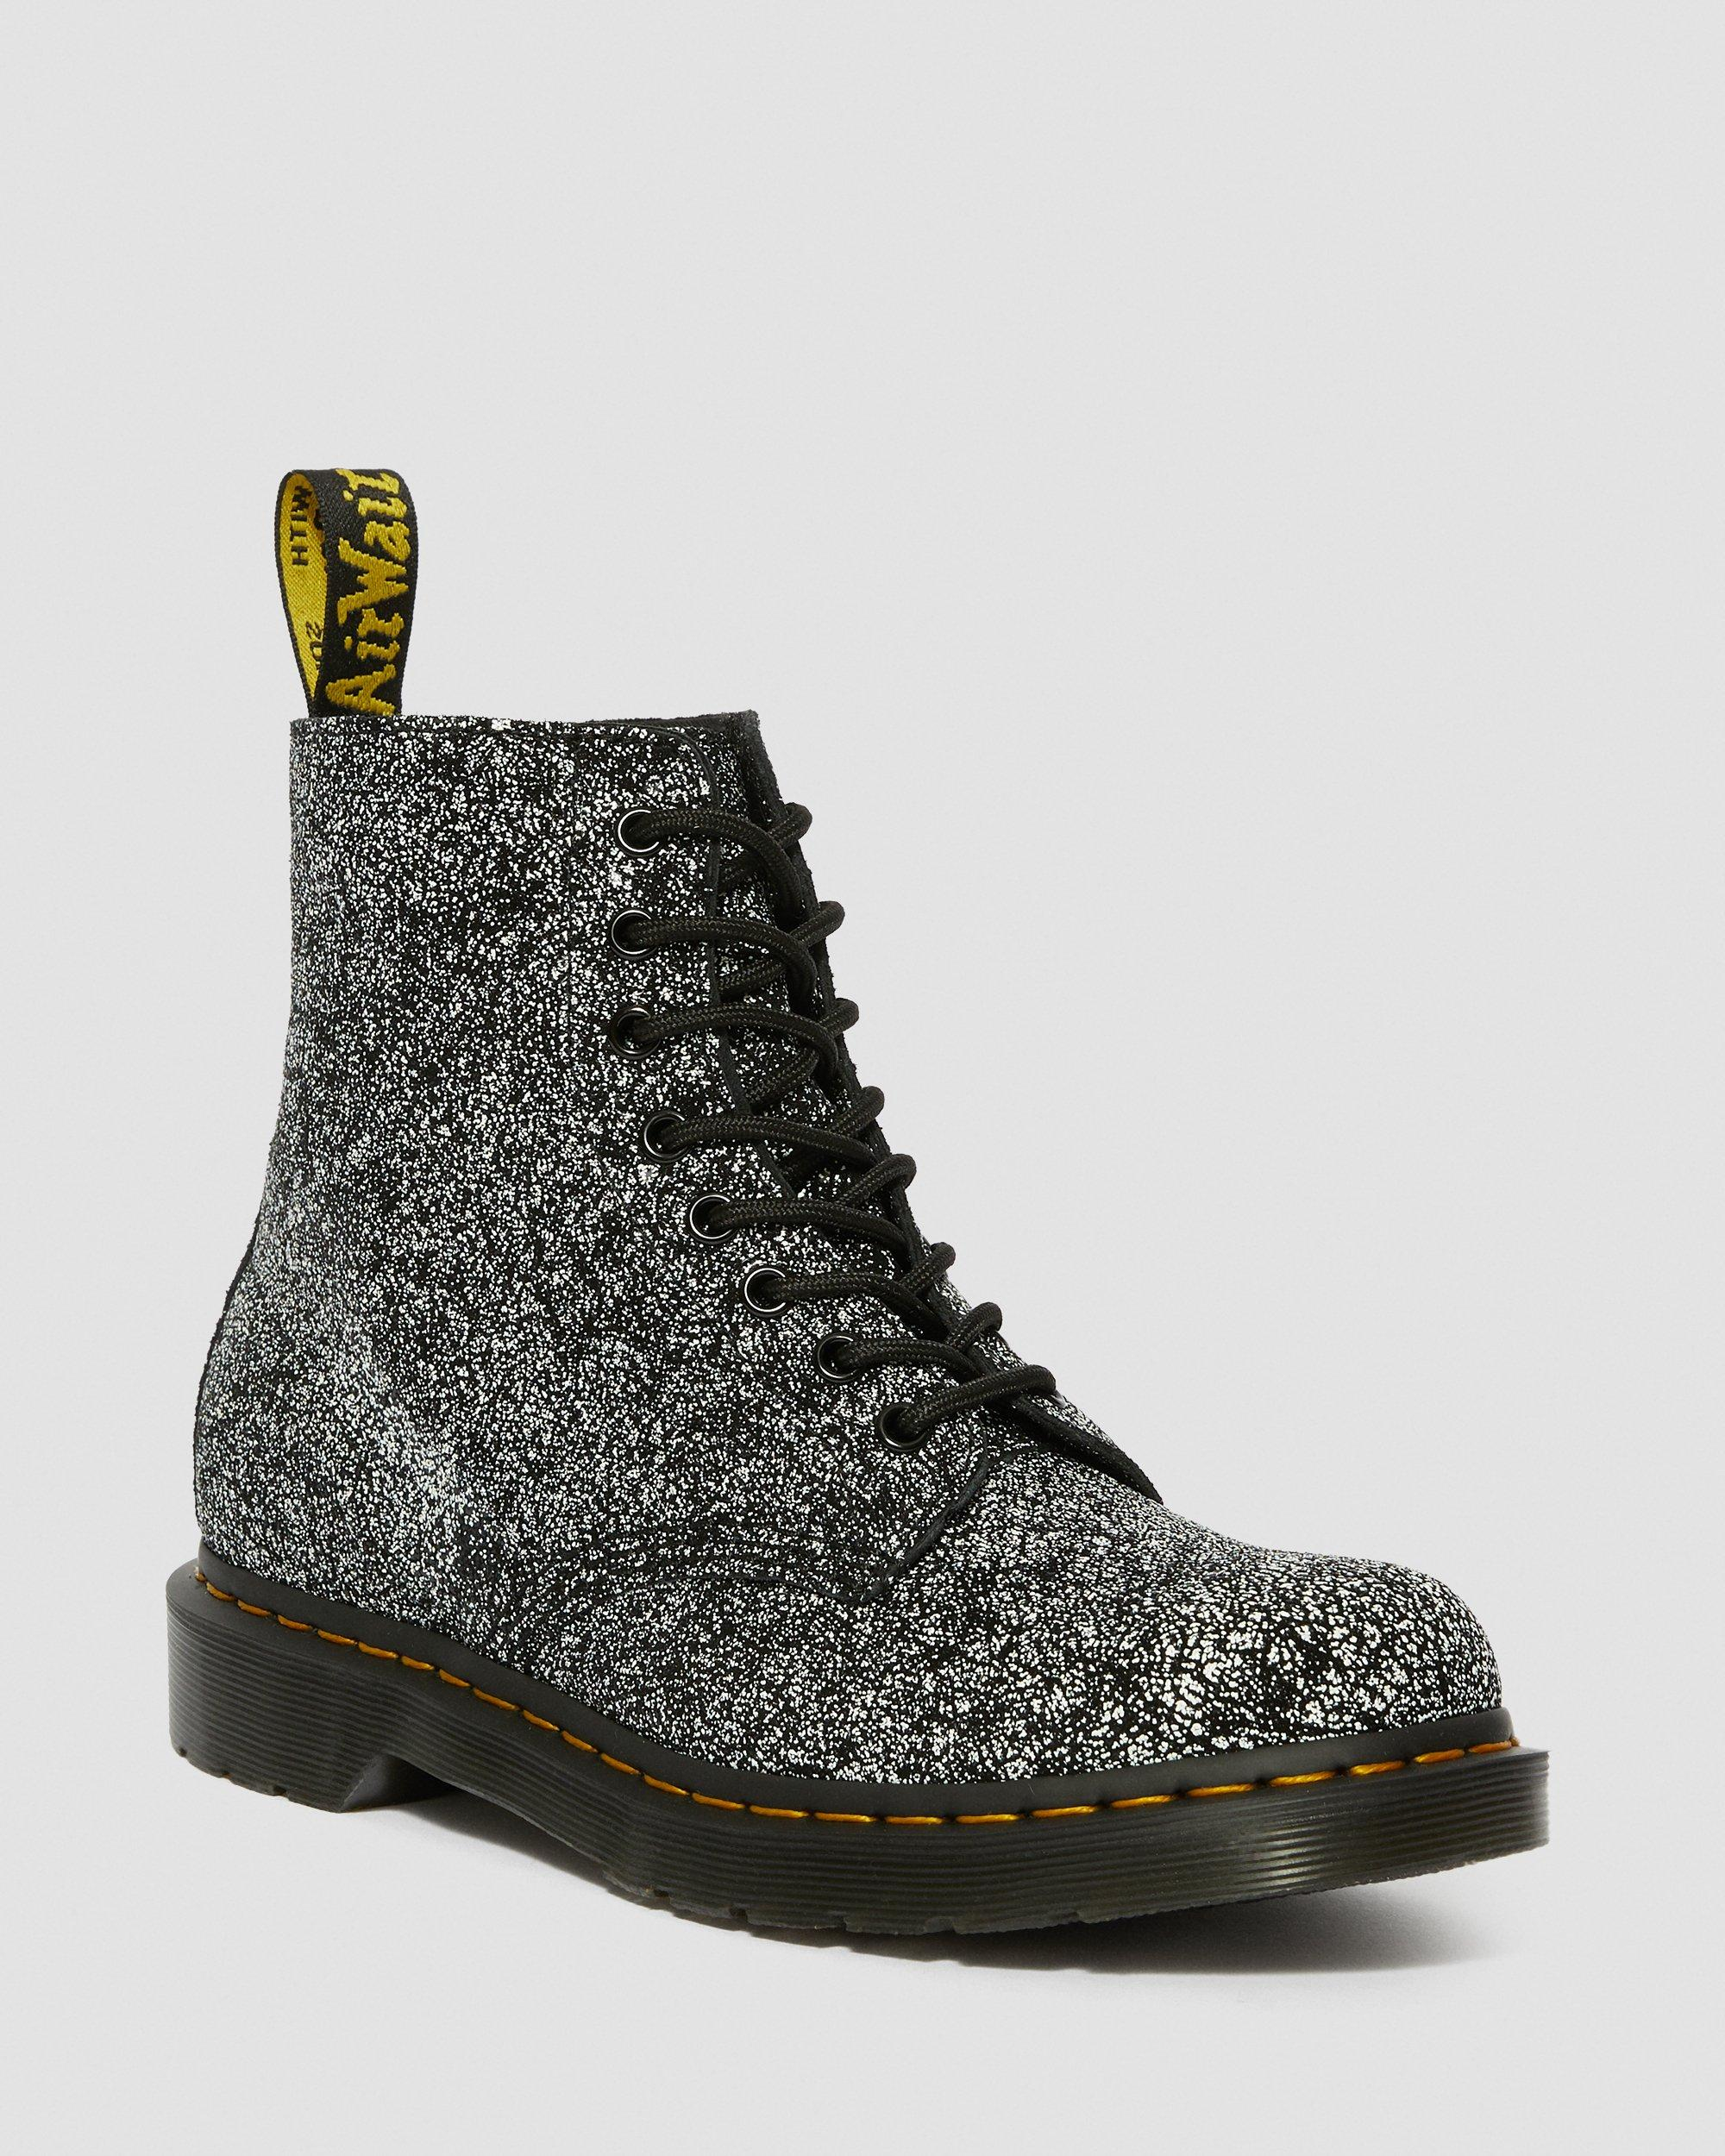 Dr martens 1460 newton leather dm's lite boots | Doc martens